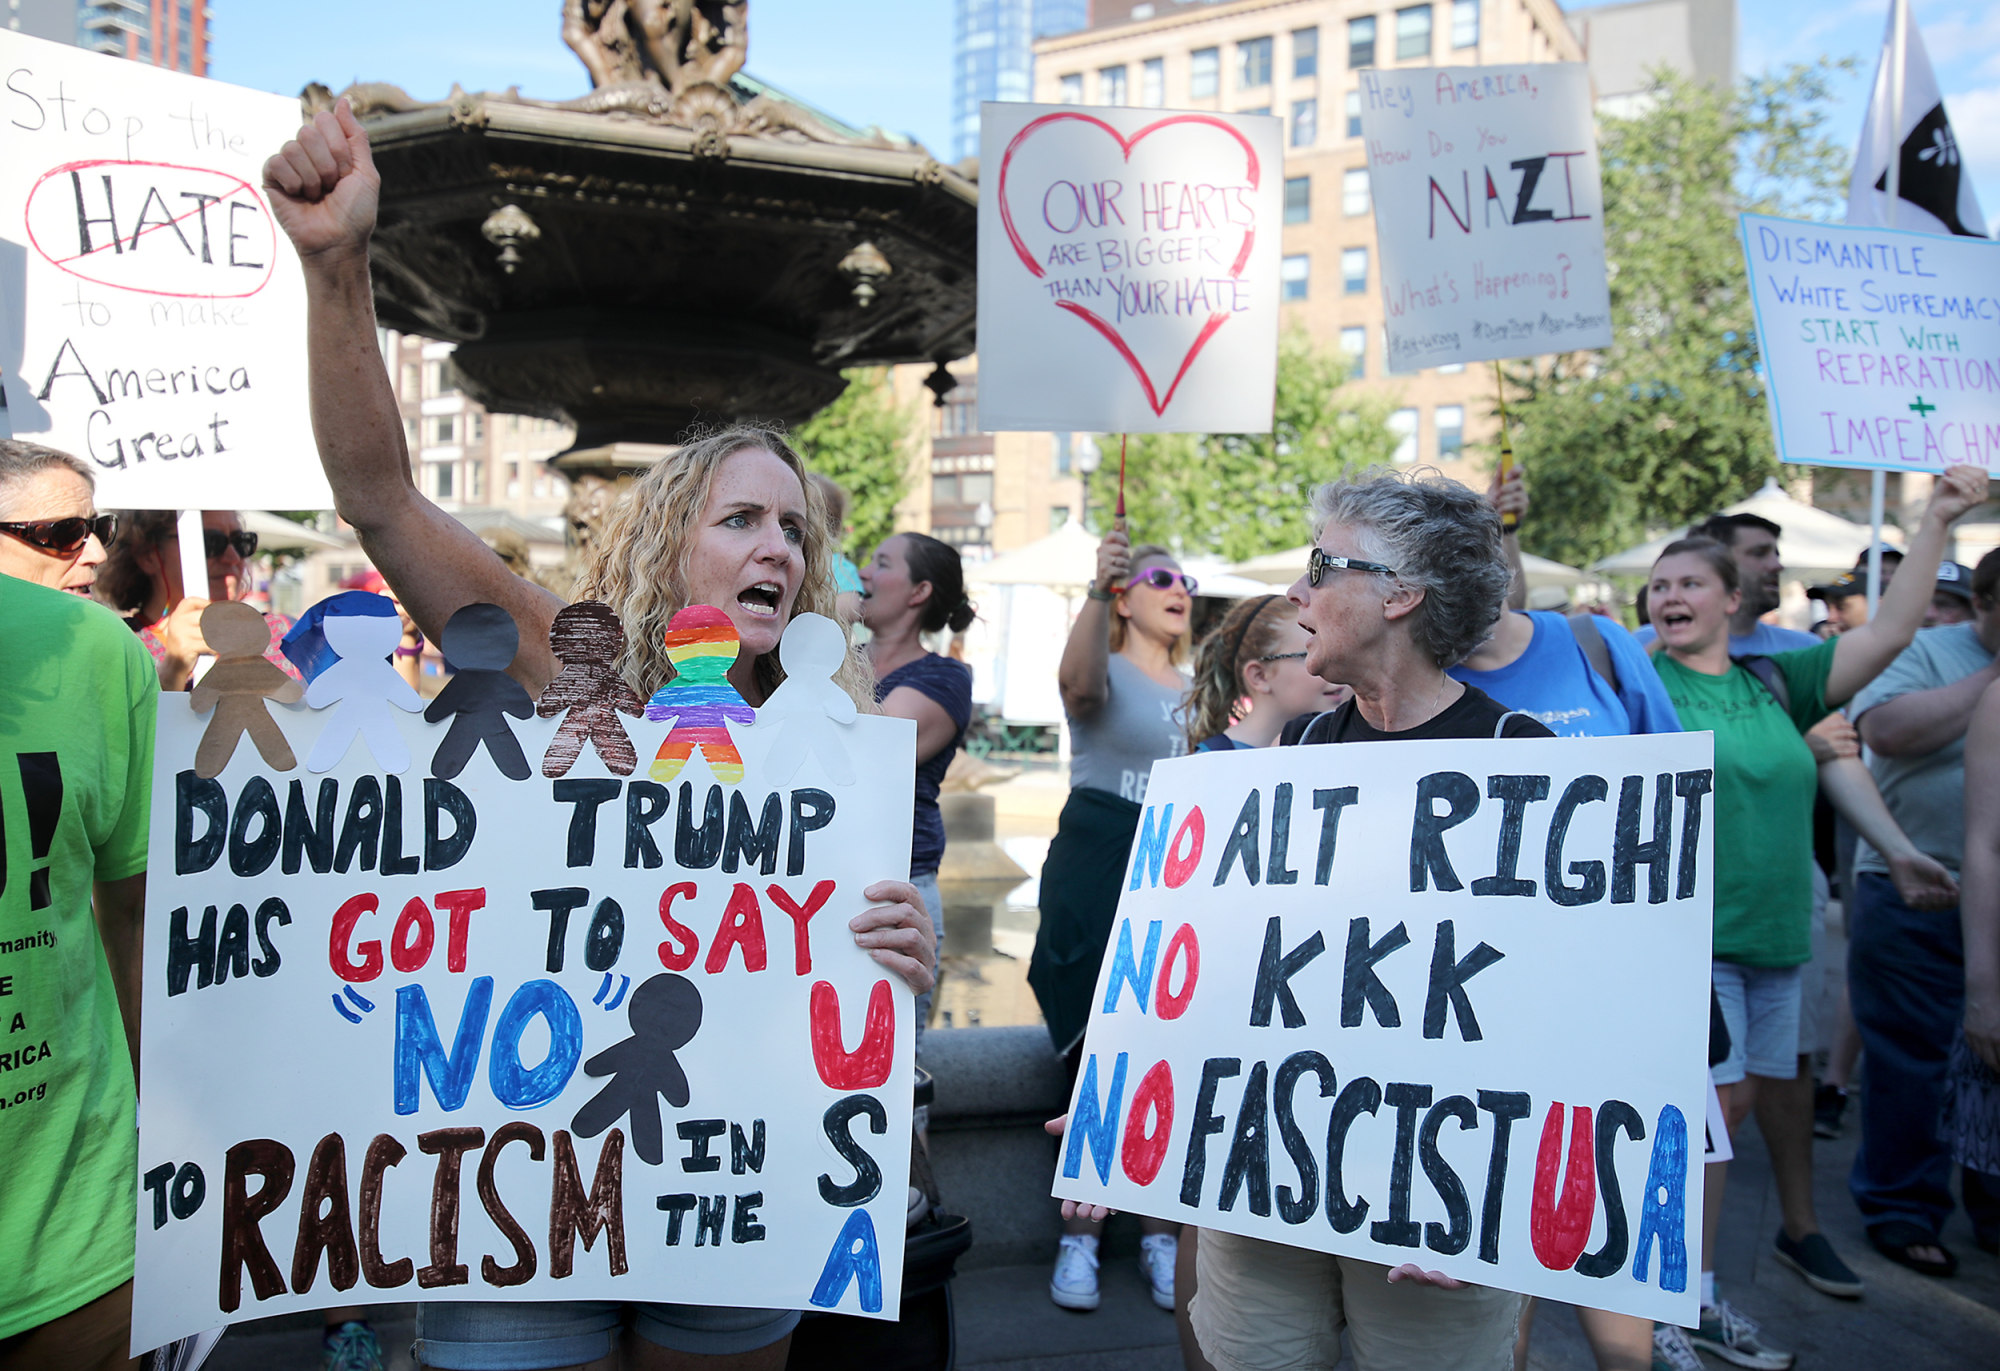 Is Trump a Fascist? Learning About How Fascism Works Can Help Prevent Its Spread in America 180902-think-boston-vigil-supporing-antifa-protesters-se-727p_0c97c748872657cb2a188d37e9b44b95.fit-2000w